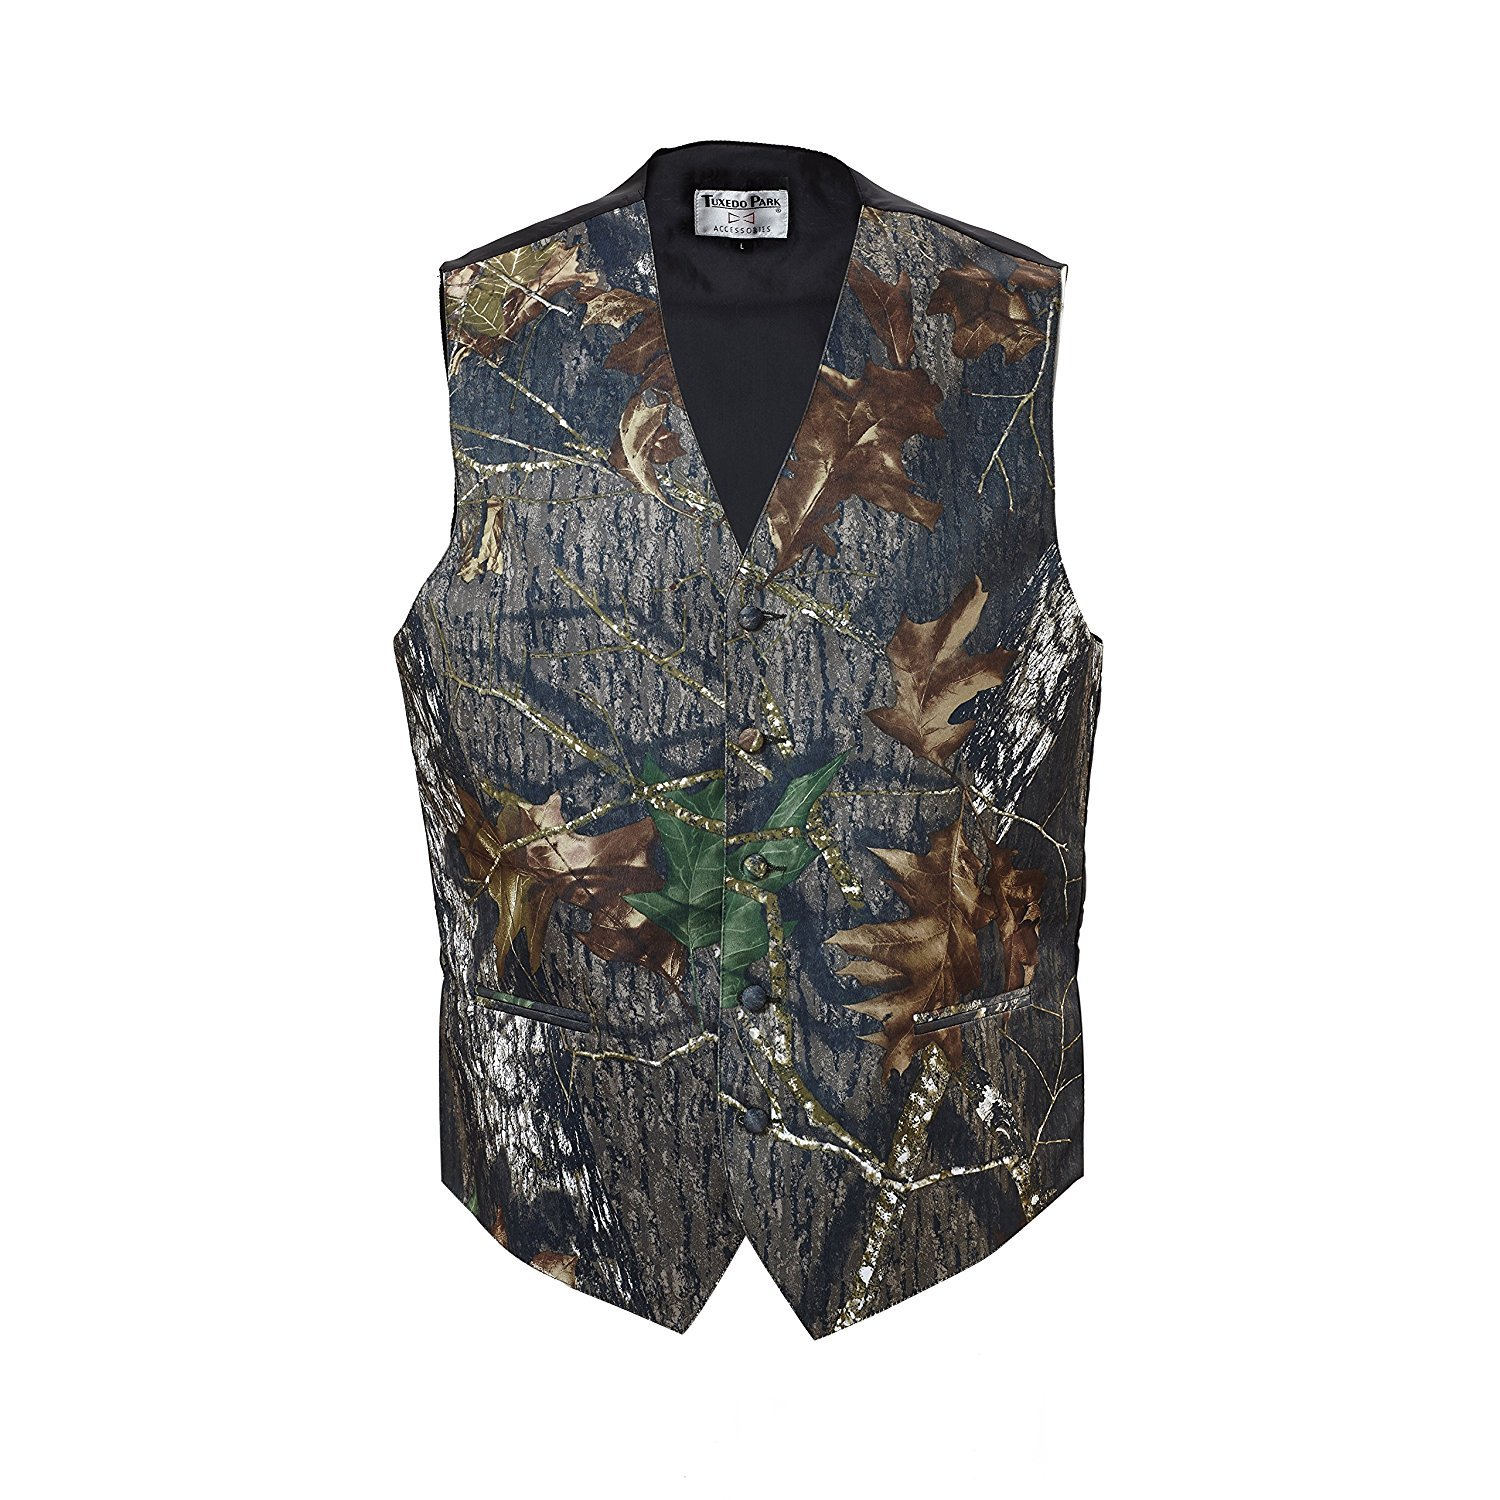 Camouflage Vest & Tie 3X-Large Long with Neck Tie